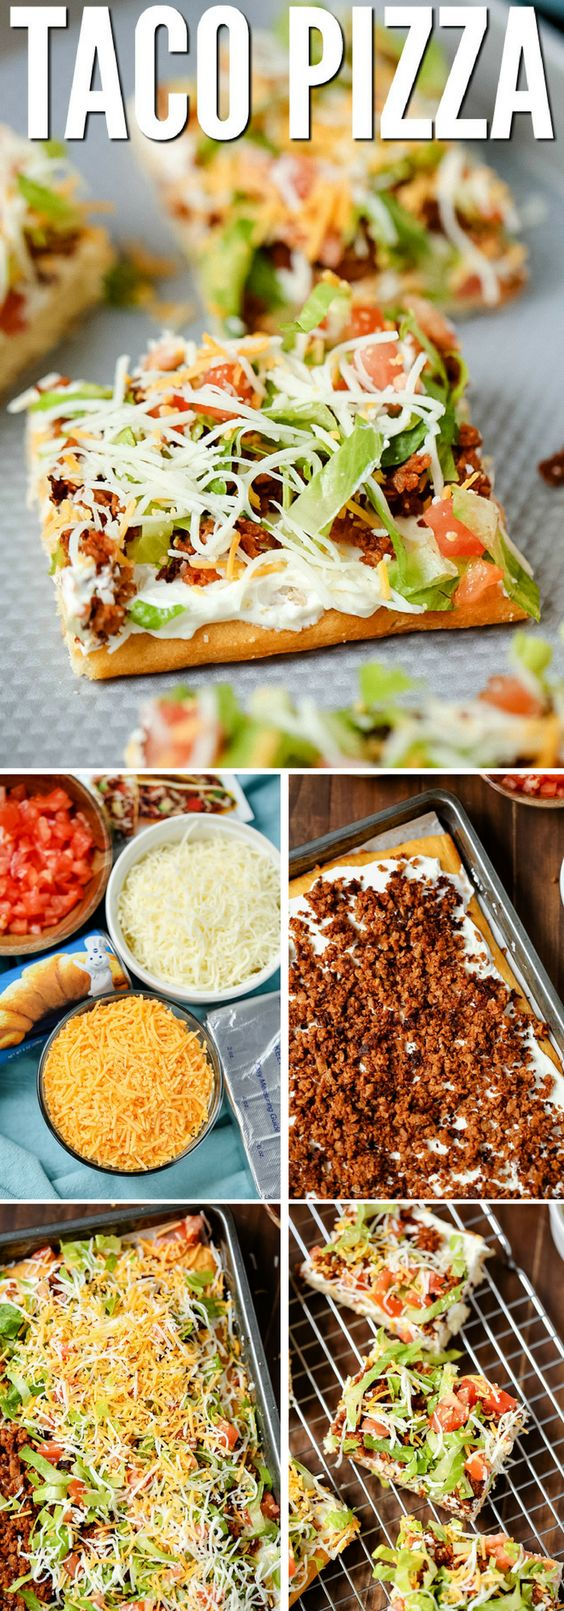 This easy taco pizza is made with a crescent roll crust and a tasty hit with the whole family. With simple ingredients, you can whip up this filling meal in under 30 minutes!